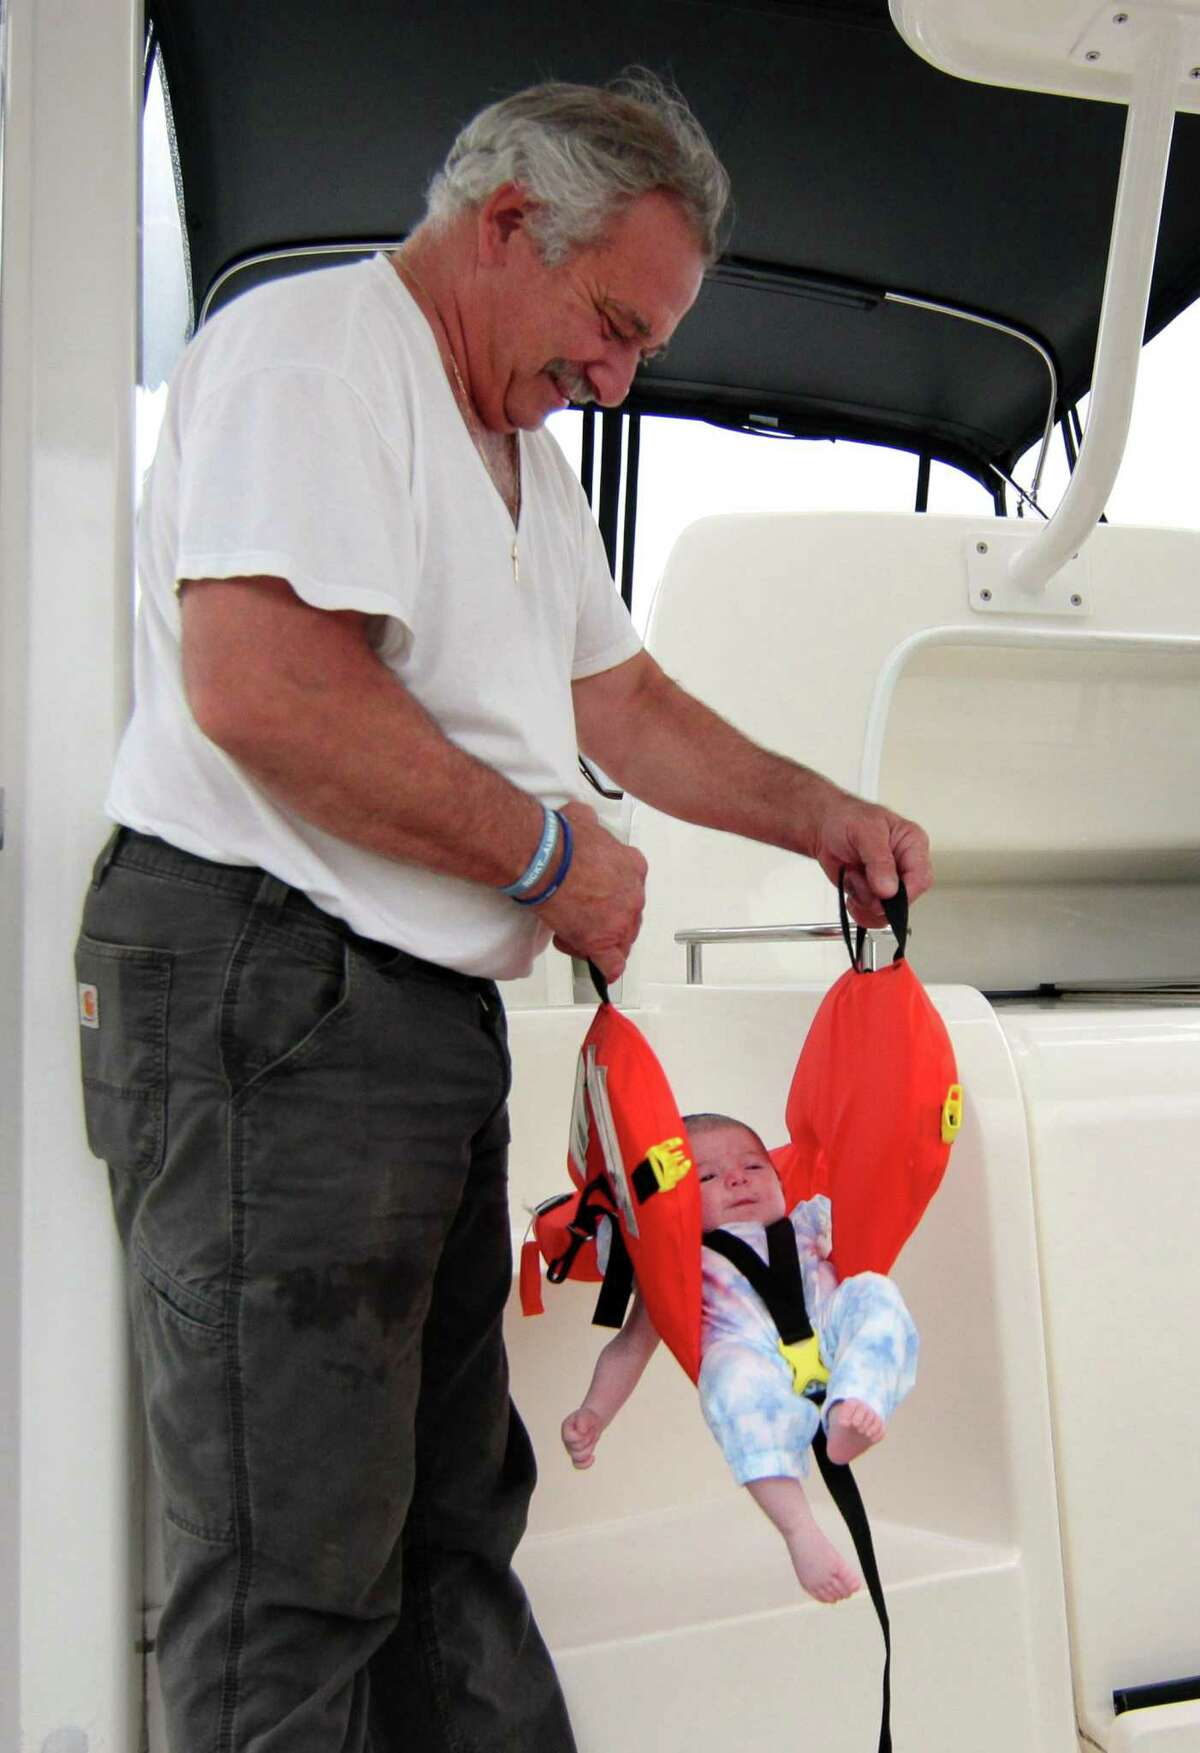 Avid boater Chris Trentini hold his five-week-old granddaughter Charlotte Murray wrapped in a lifevest on his boat Donna Marie at Beacon Point Marina. Because of storms that passed through the region, the family decided to just hang out on the boat in port.